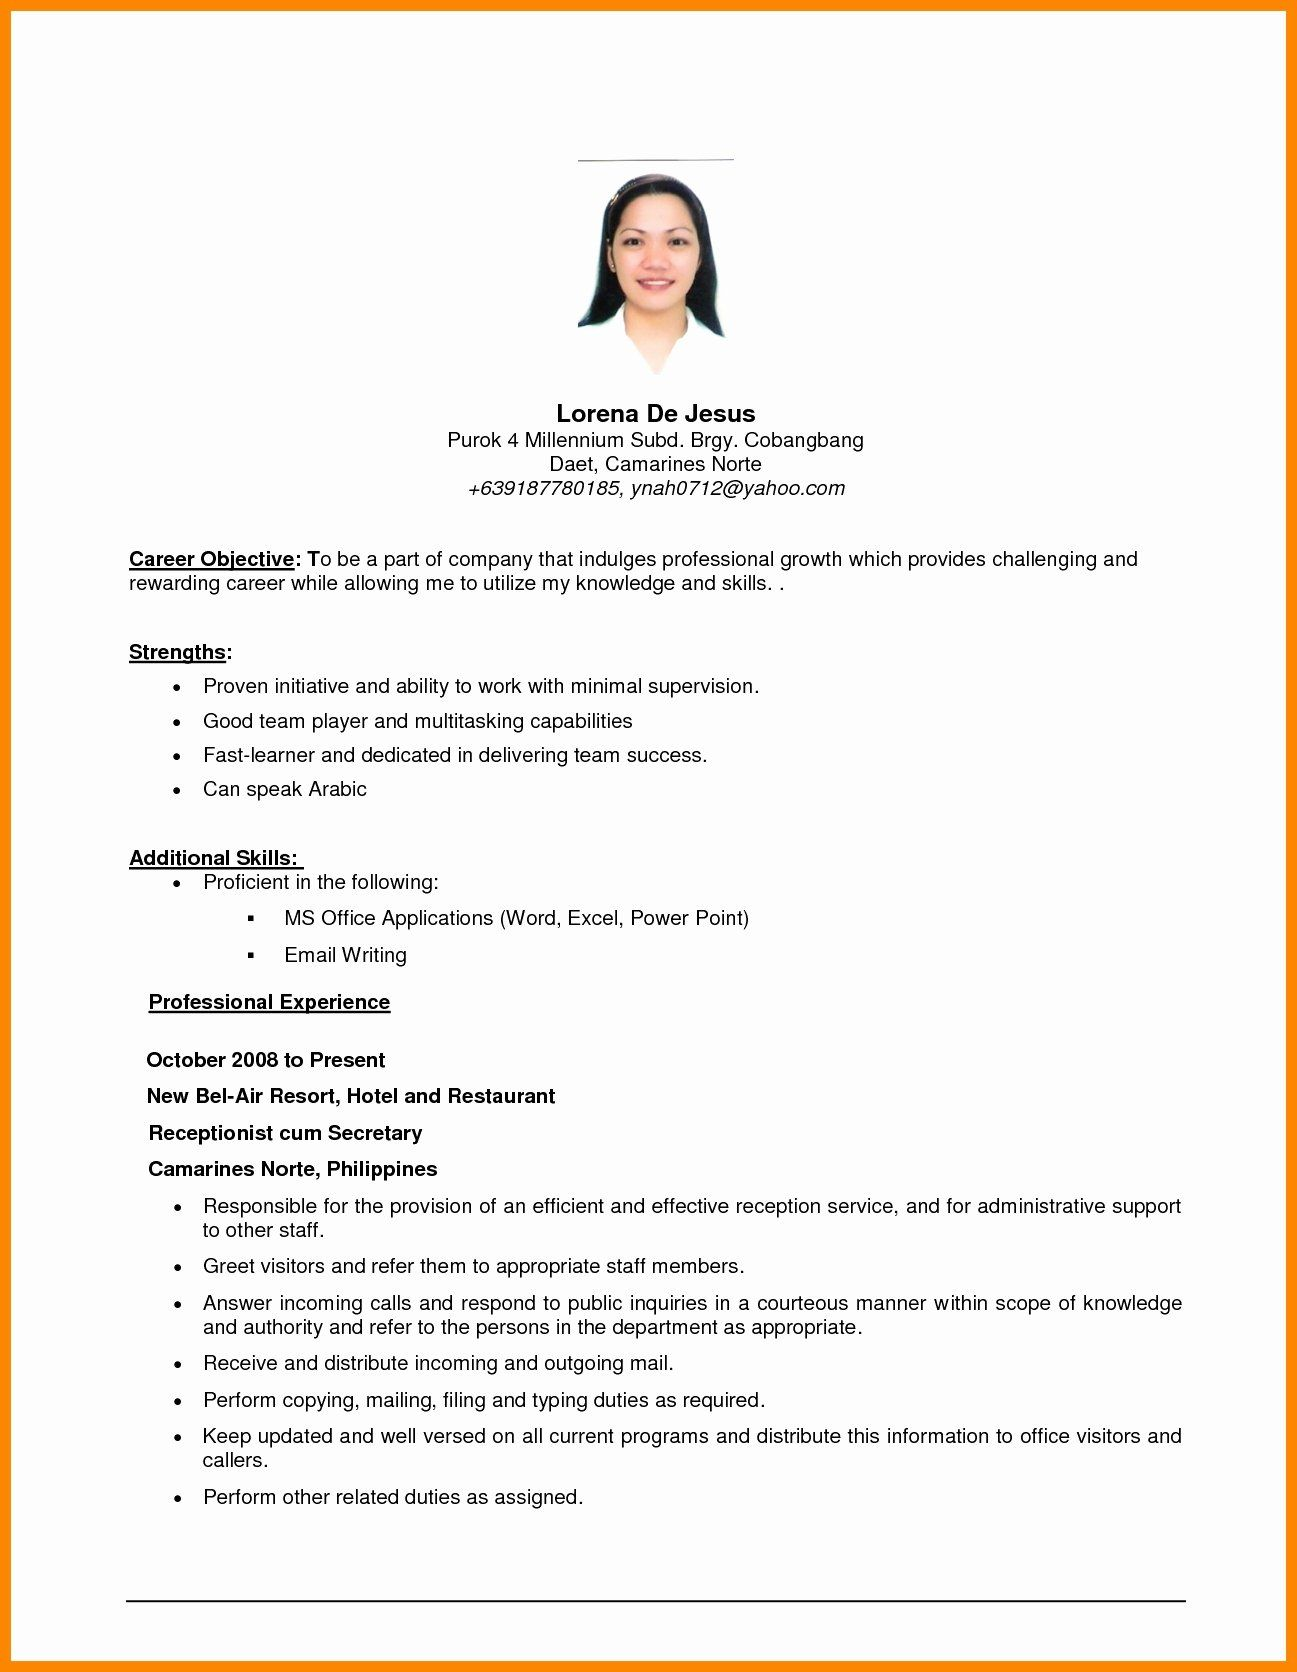 generic objective for resume inspirational general examples job career objectives good Resume Good Objective For Resume For First Job